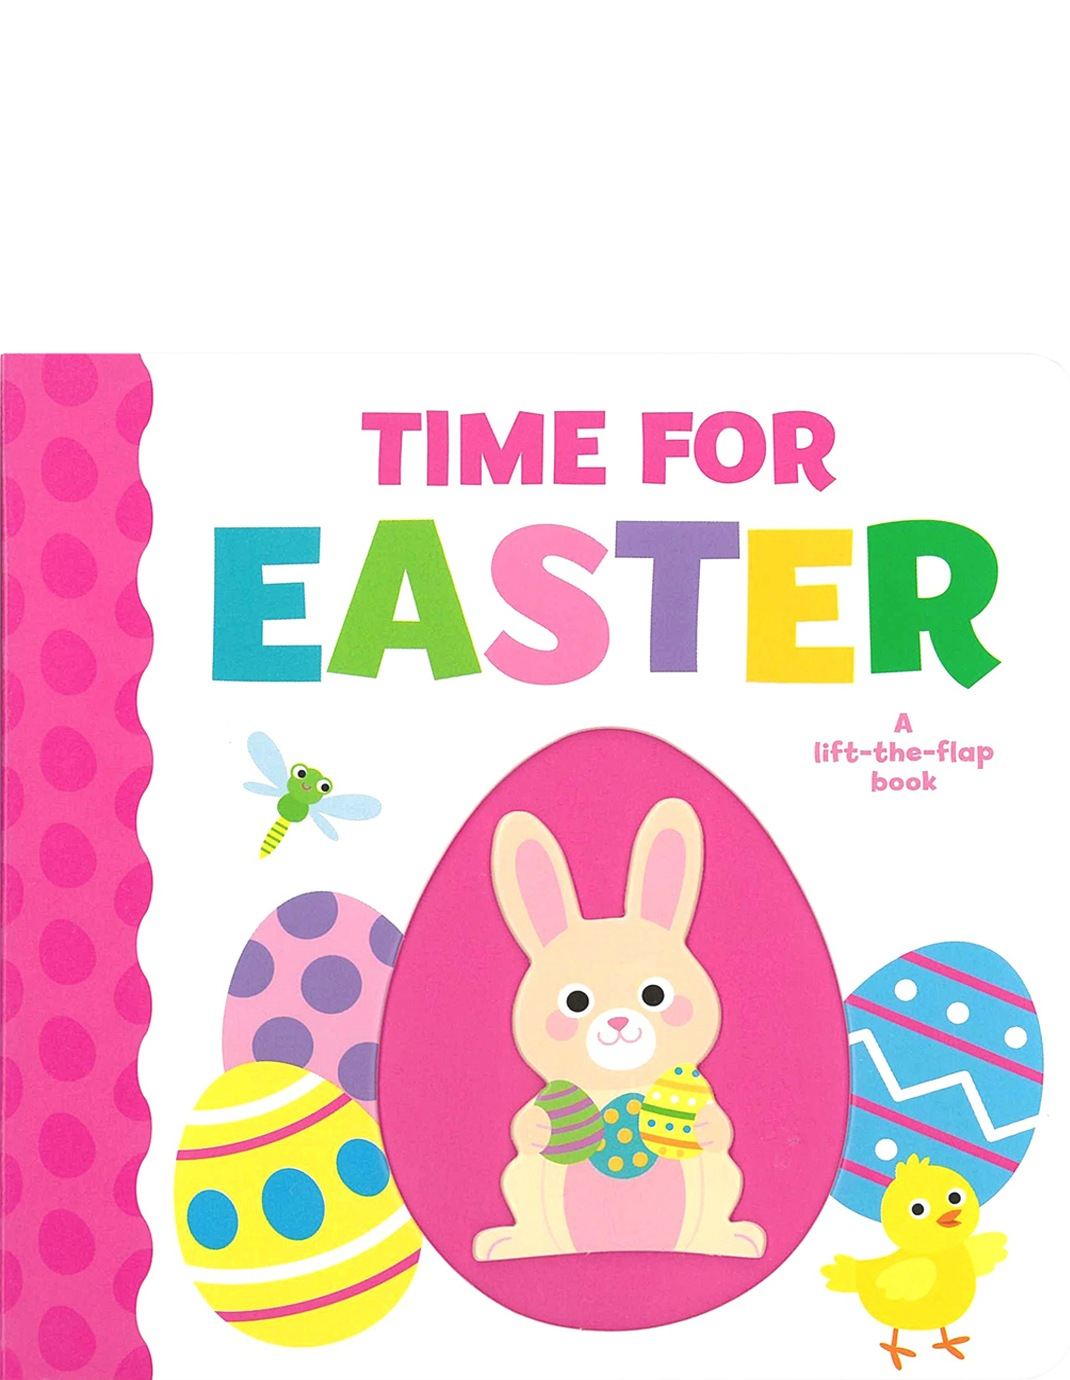 Time for easter myer online time for easter myer online negle Images